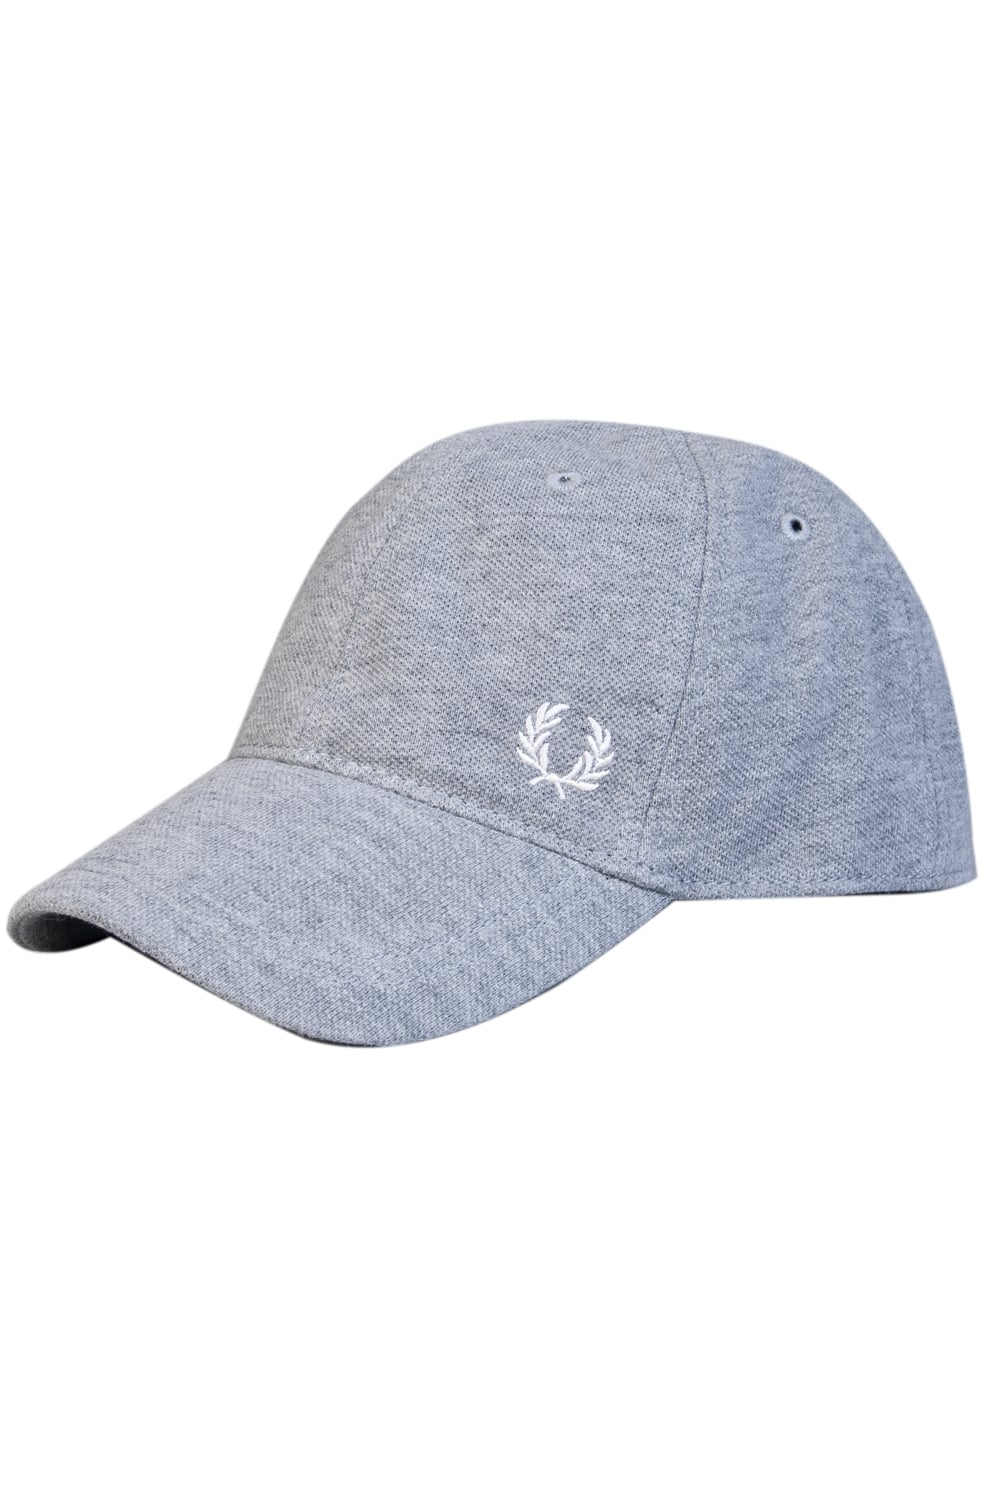 Fred Perry Baseball Cap HW3650 - Accessories from Sage Clothing UK 20da00d59ed